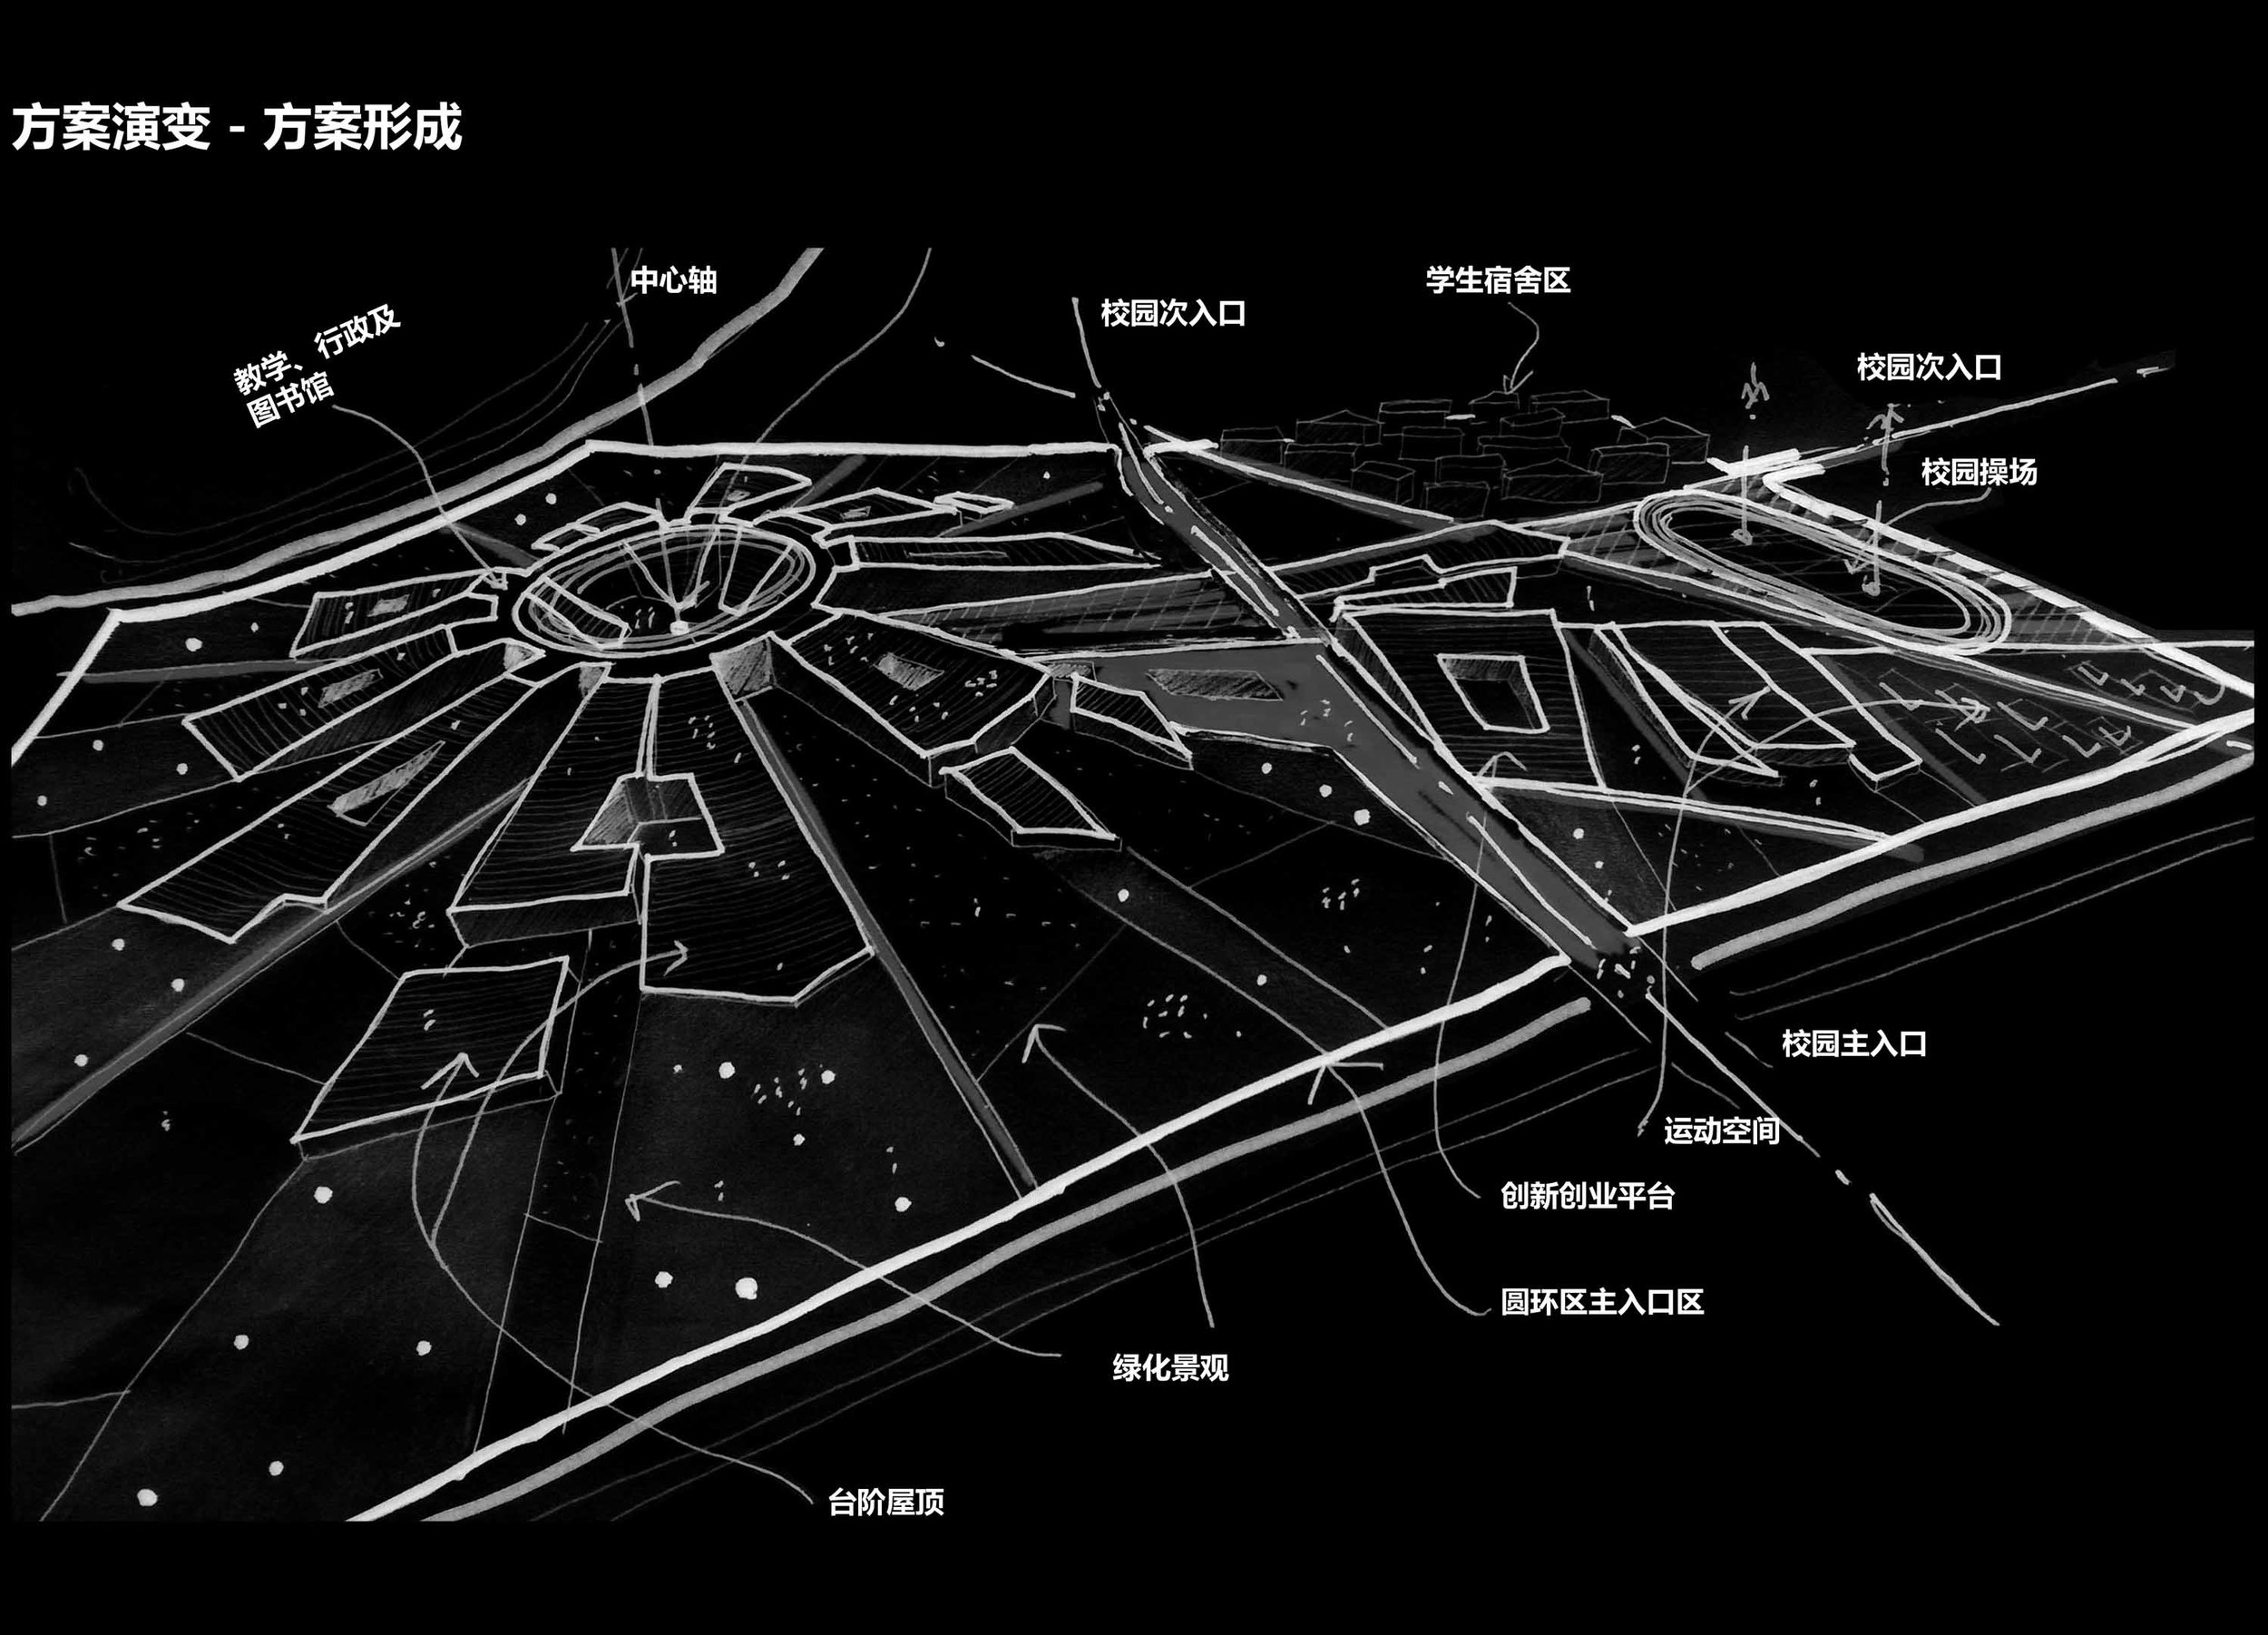 architecture and engineering office Berlin competition China